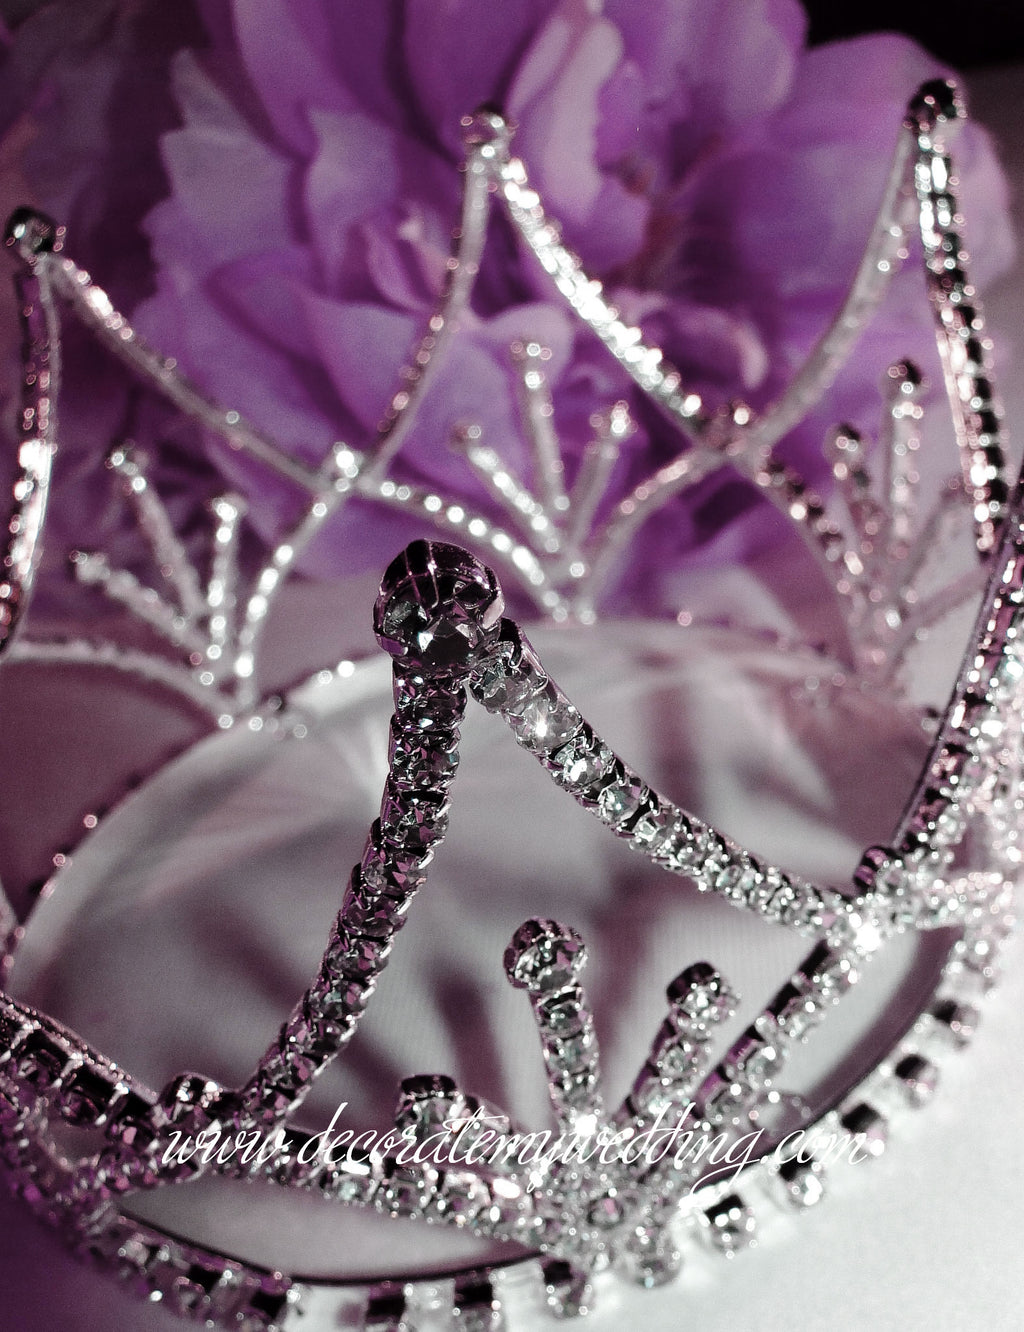 This crown decoration is a perfect topper for that princess-themed event.